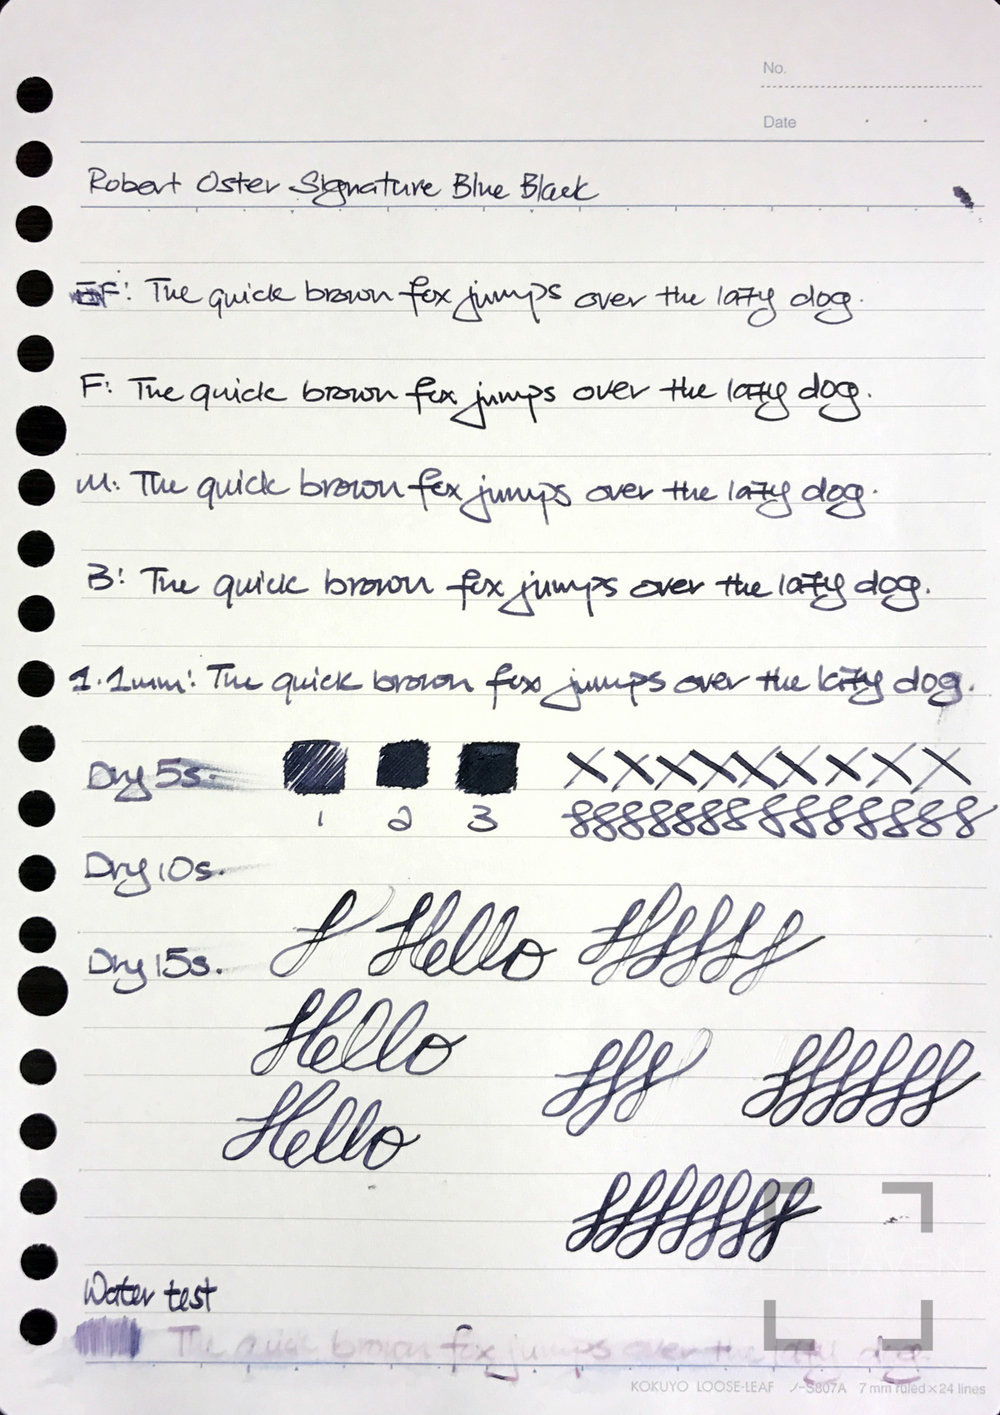 Robert Oster Signature Bllue Black 1.jpg